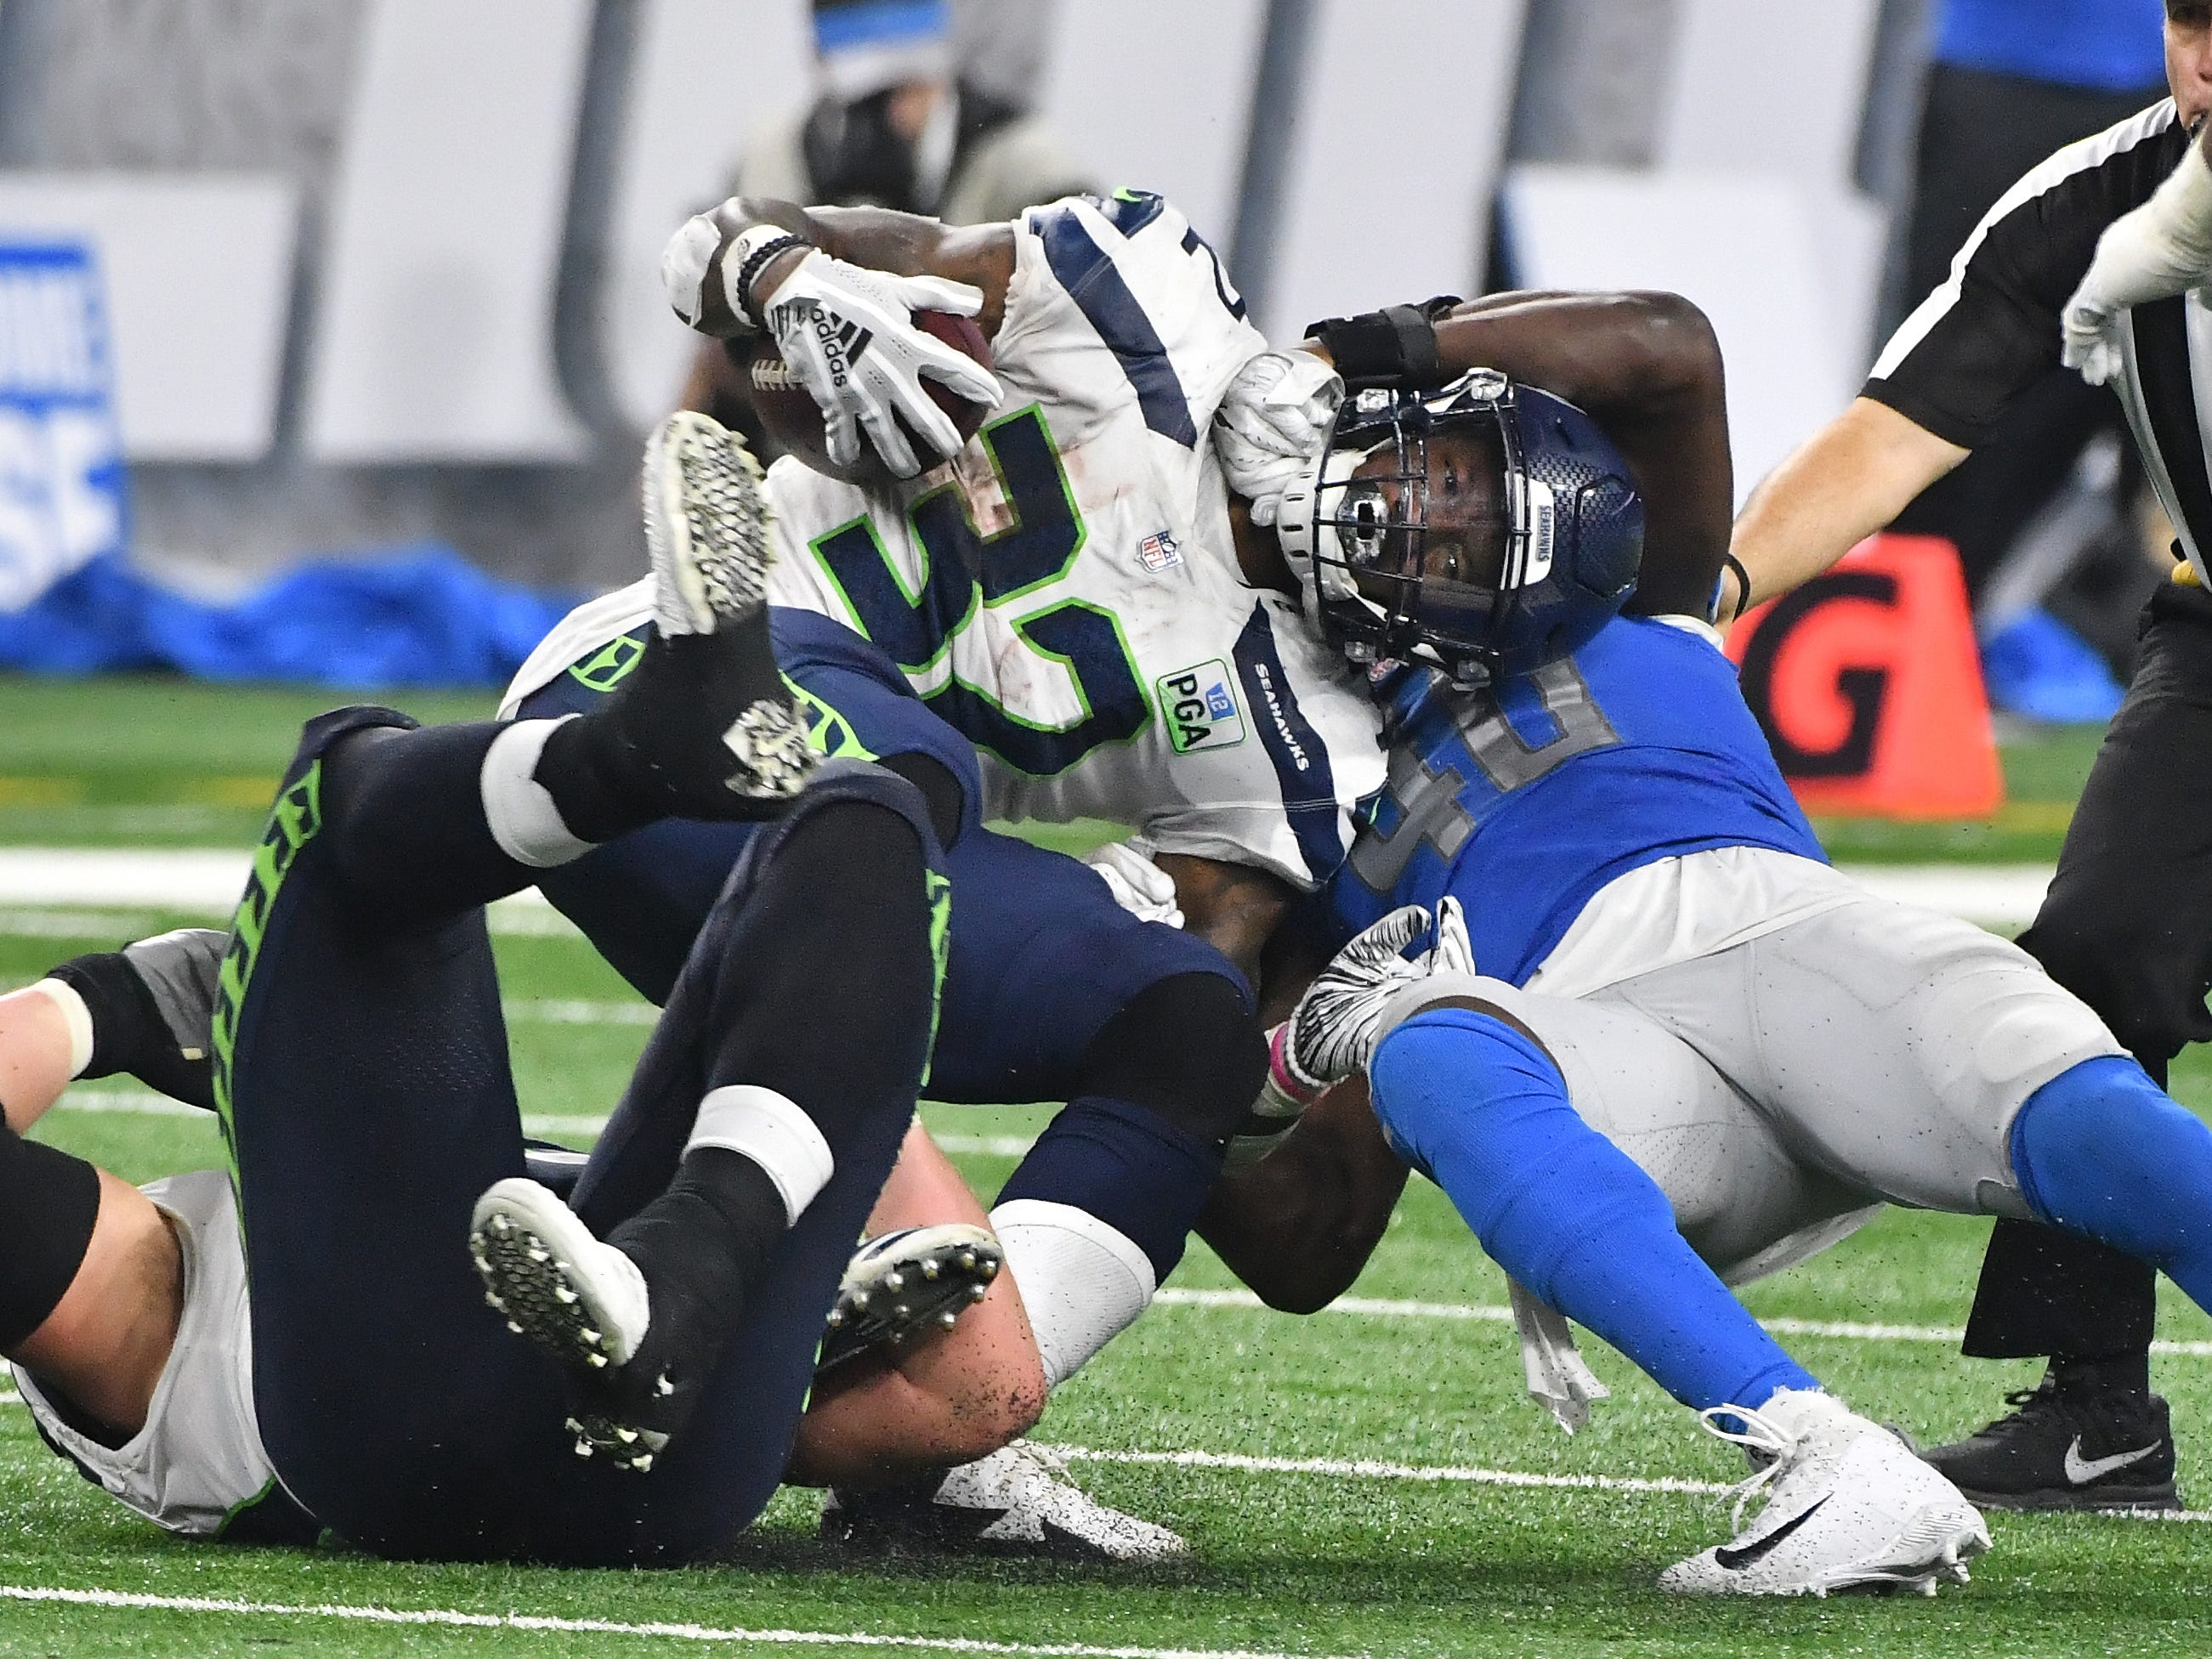 On fourth and one, Seattles' Chris Carson is stopped, turning the ball over to Detroit in the fourth quarter.